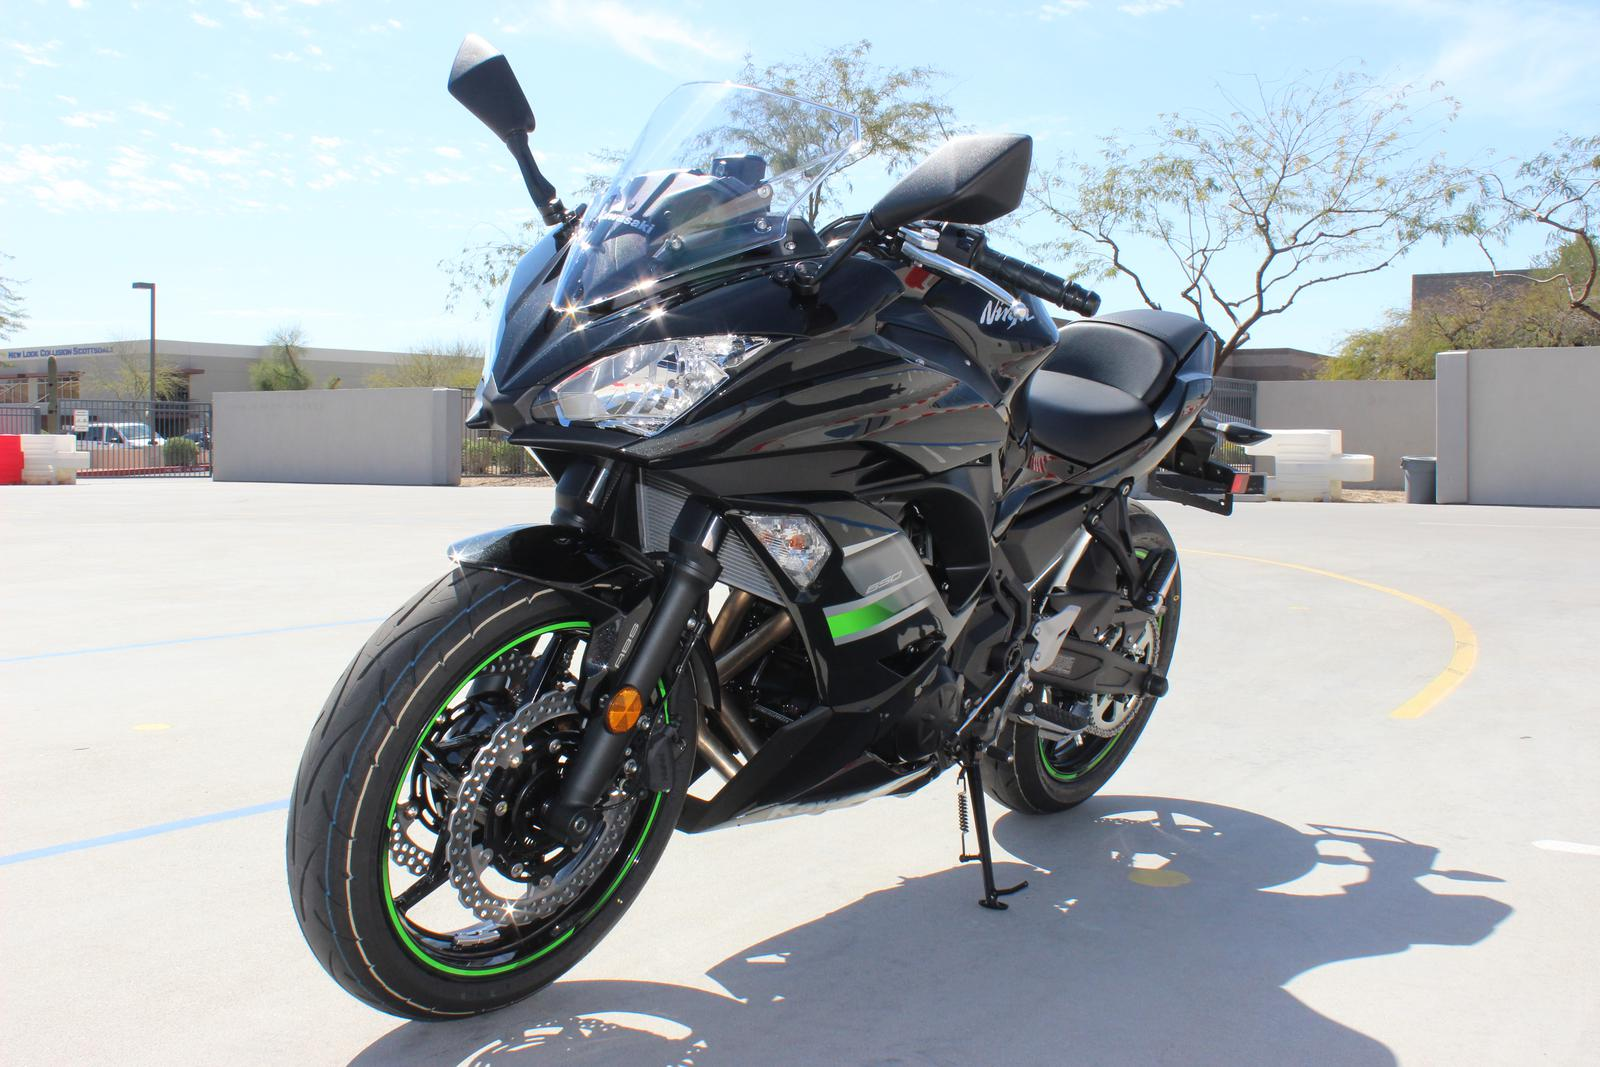 2019 Kawasaki Ninja 650 Abs For Sale In Scottsdale Az Go Az